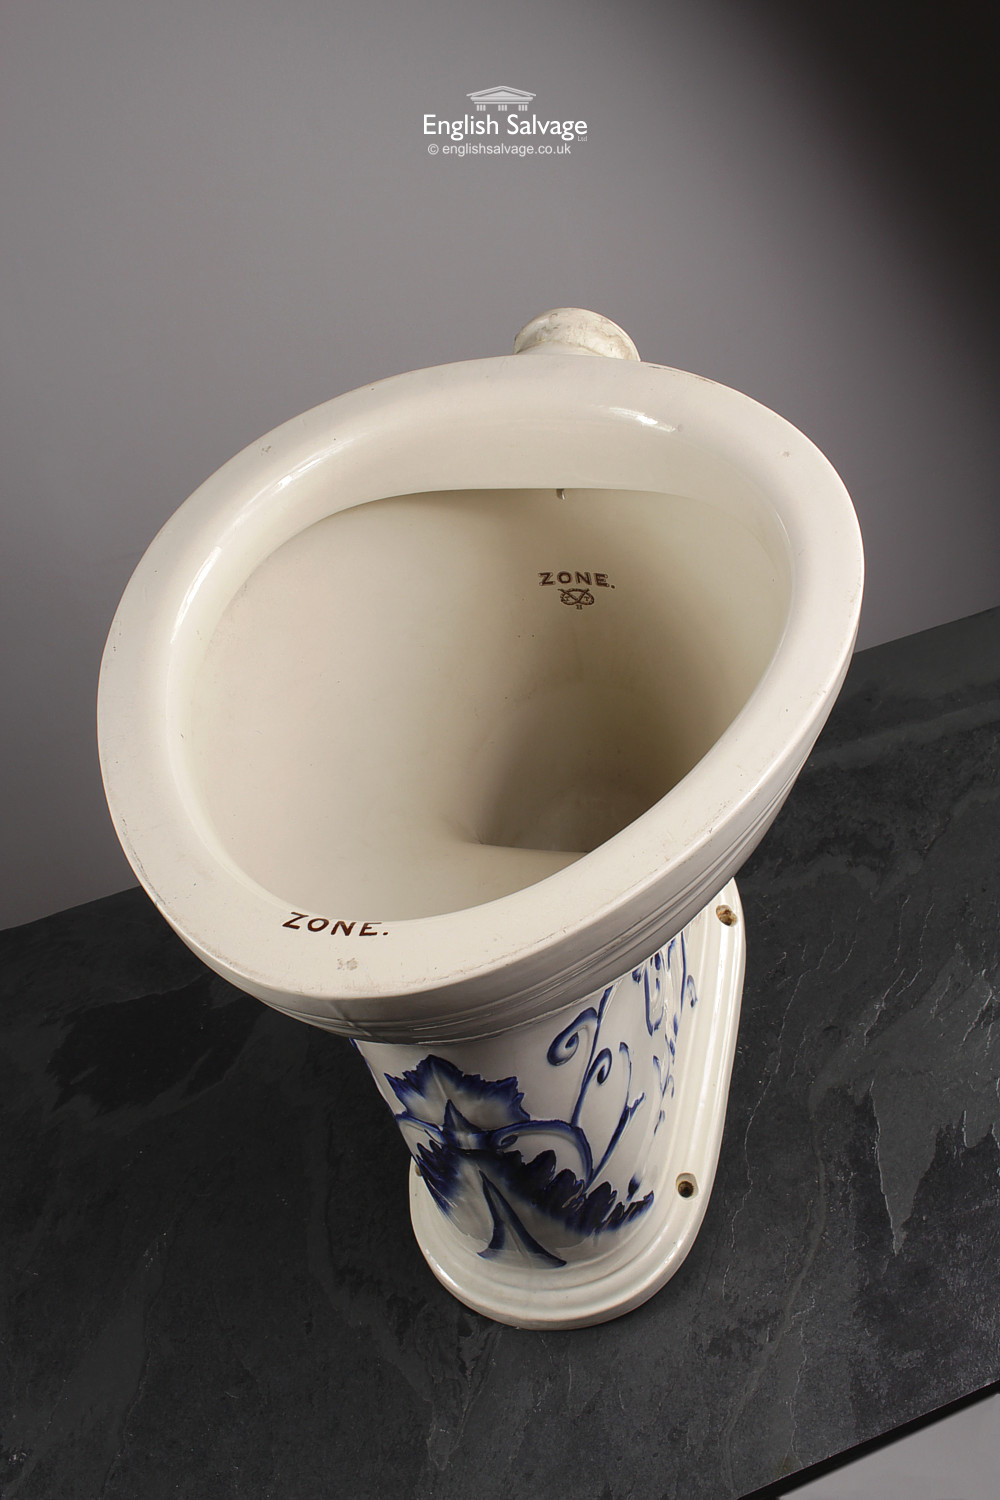 Salvaged Embellished Cream Zone Toilet / Loo